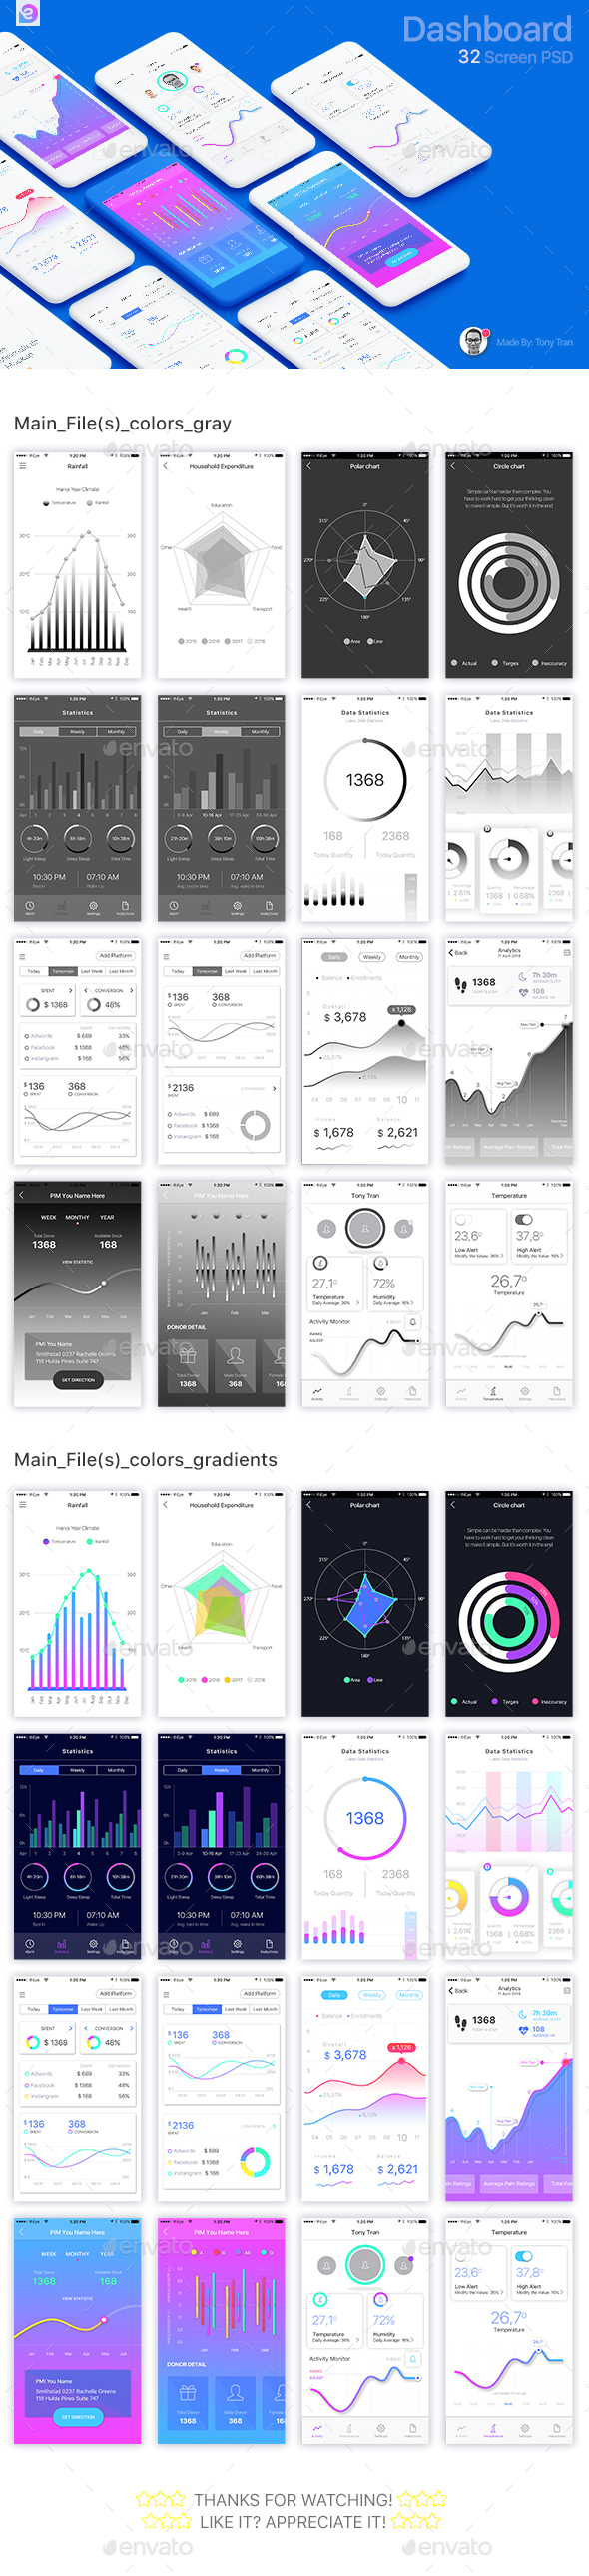 Calculator UI (User Interfaces)